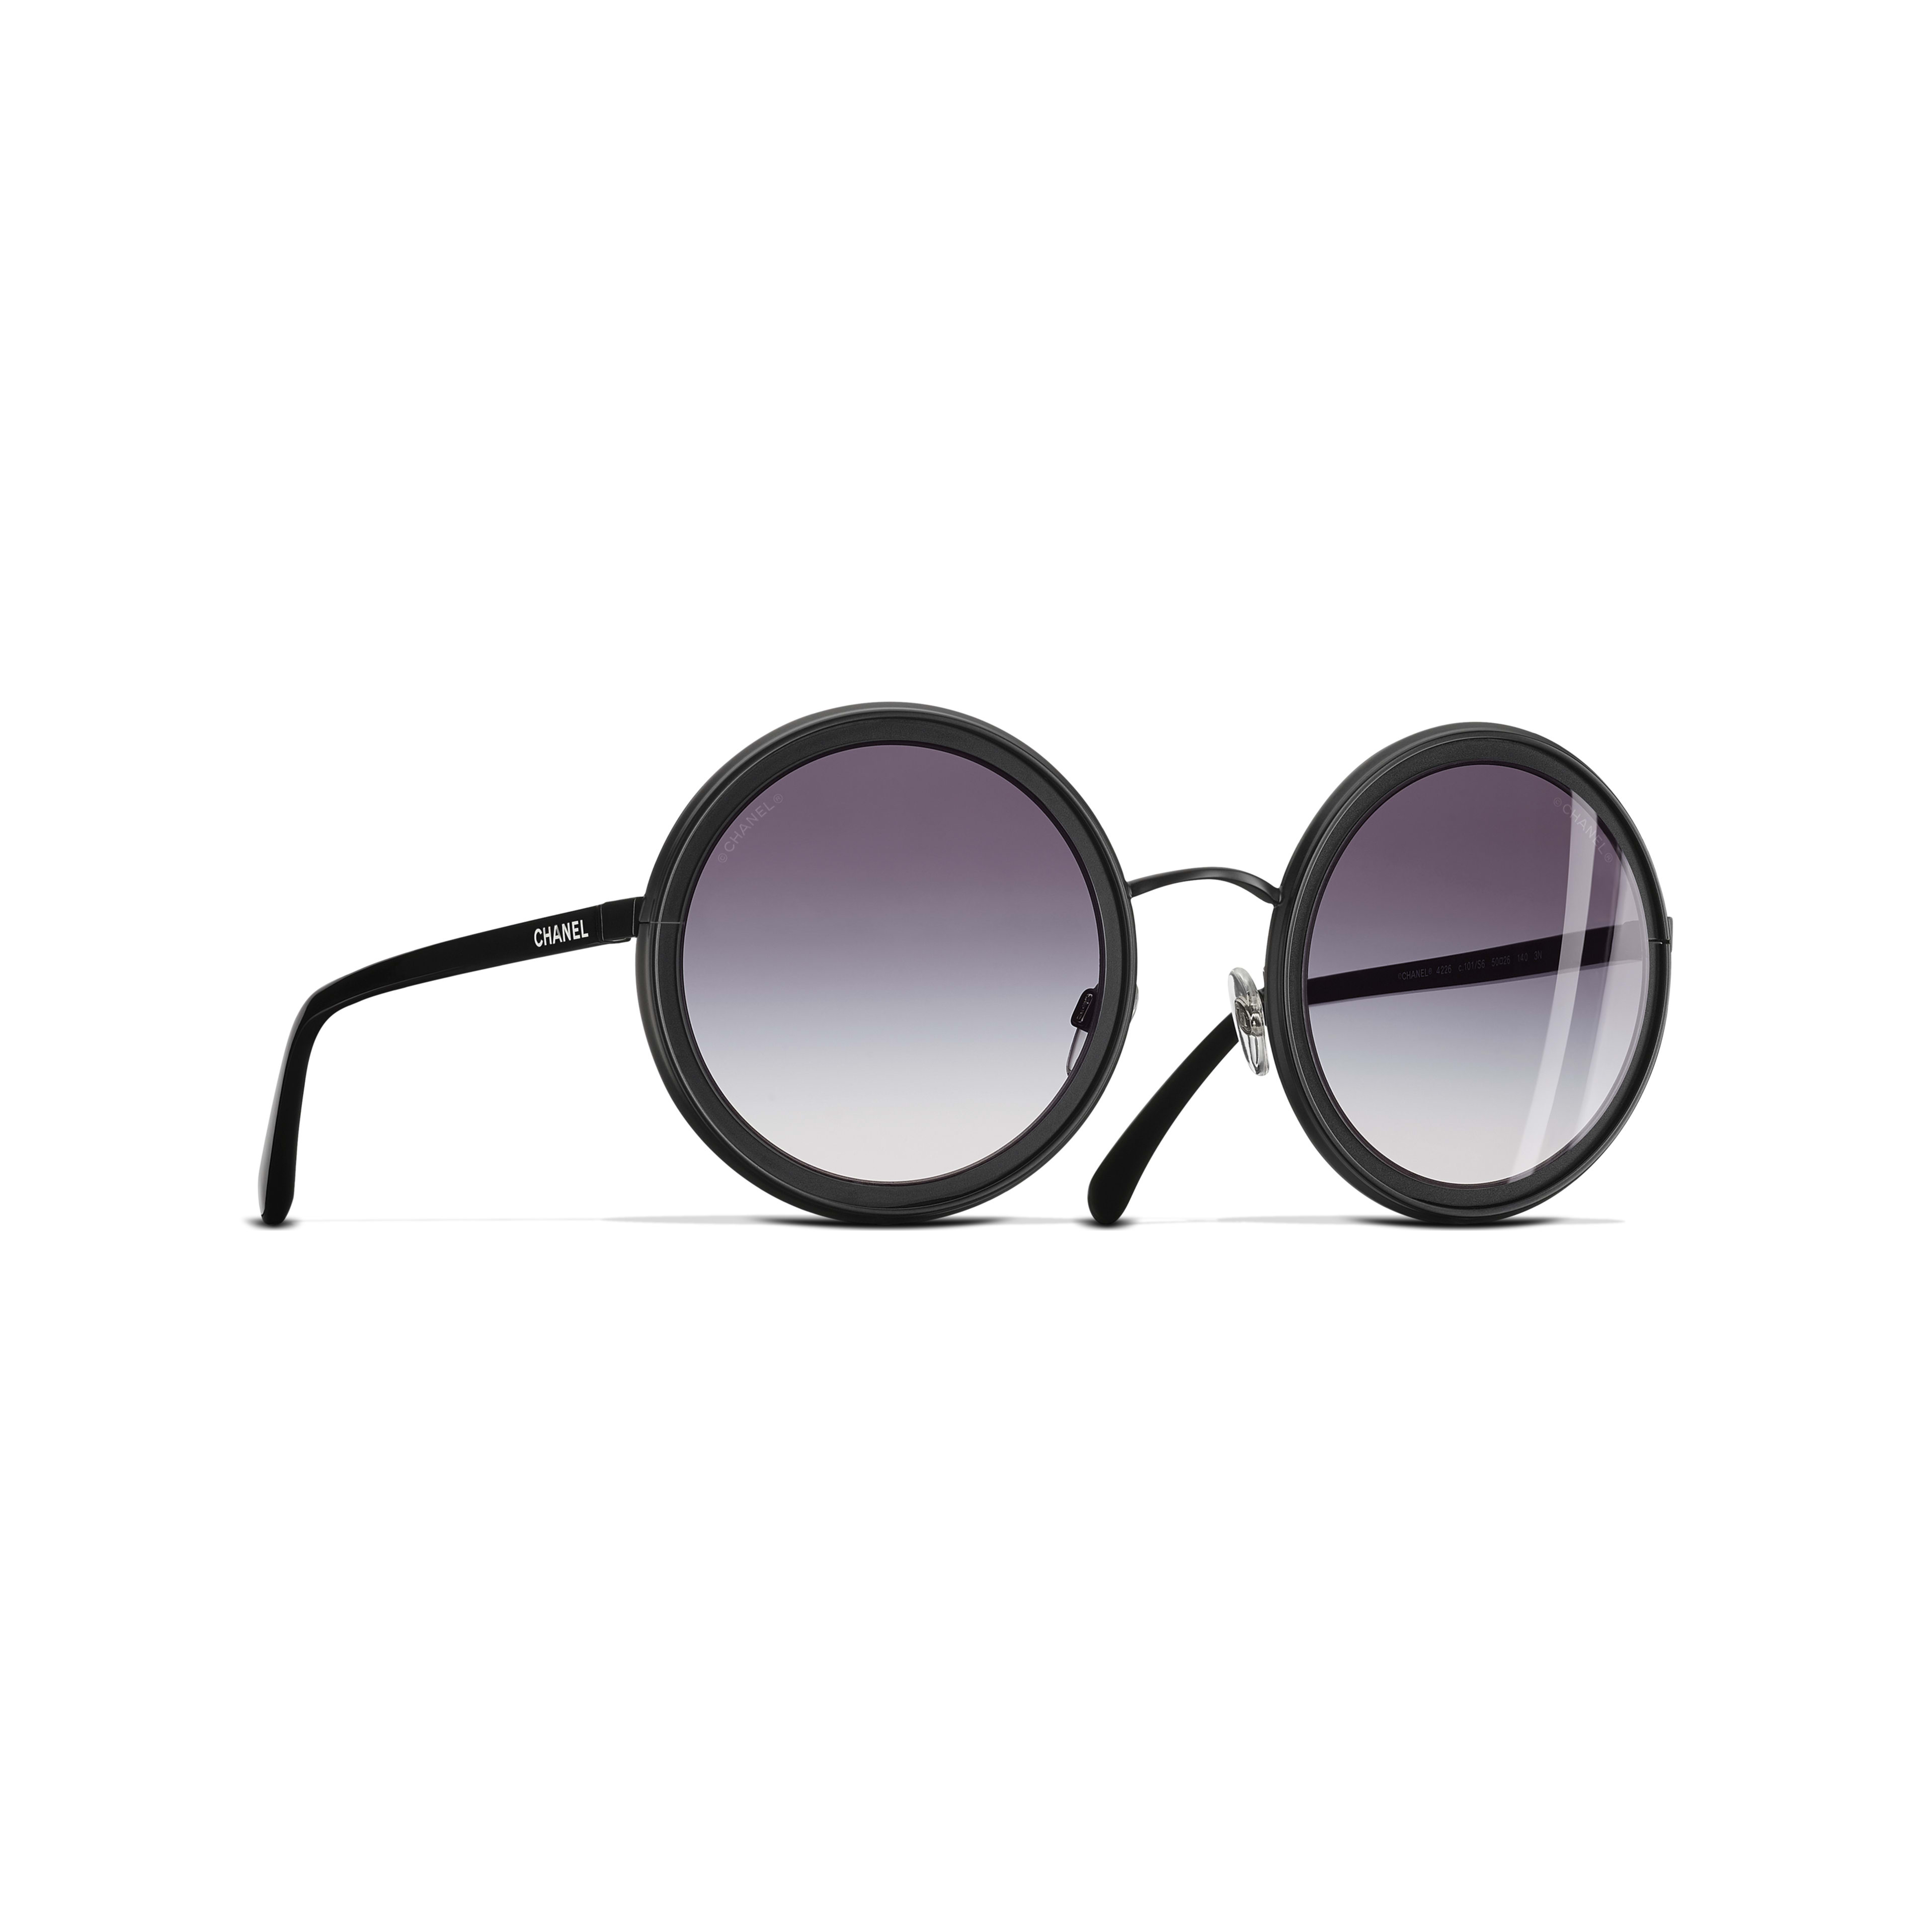 Round Sunglasses Metal Black -                                               view 1 - see full sized version